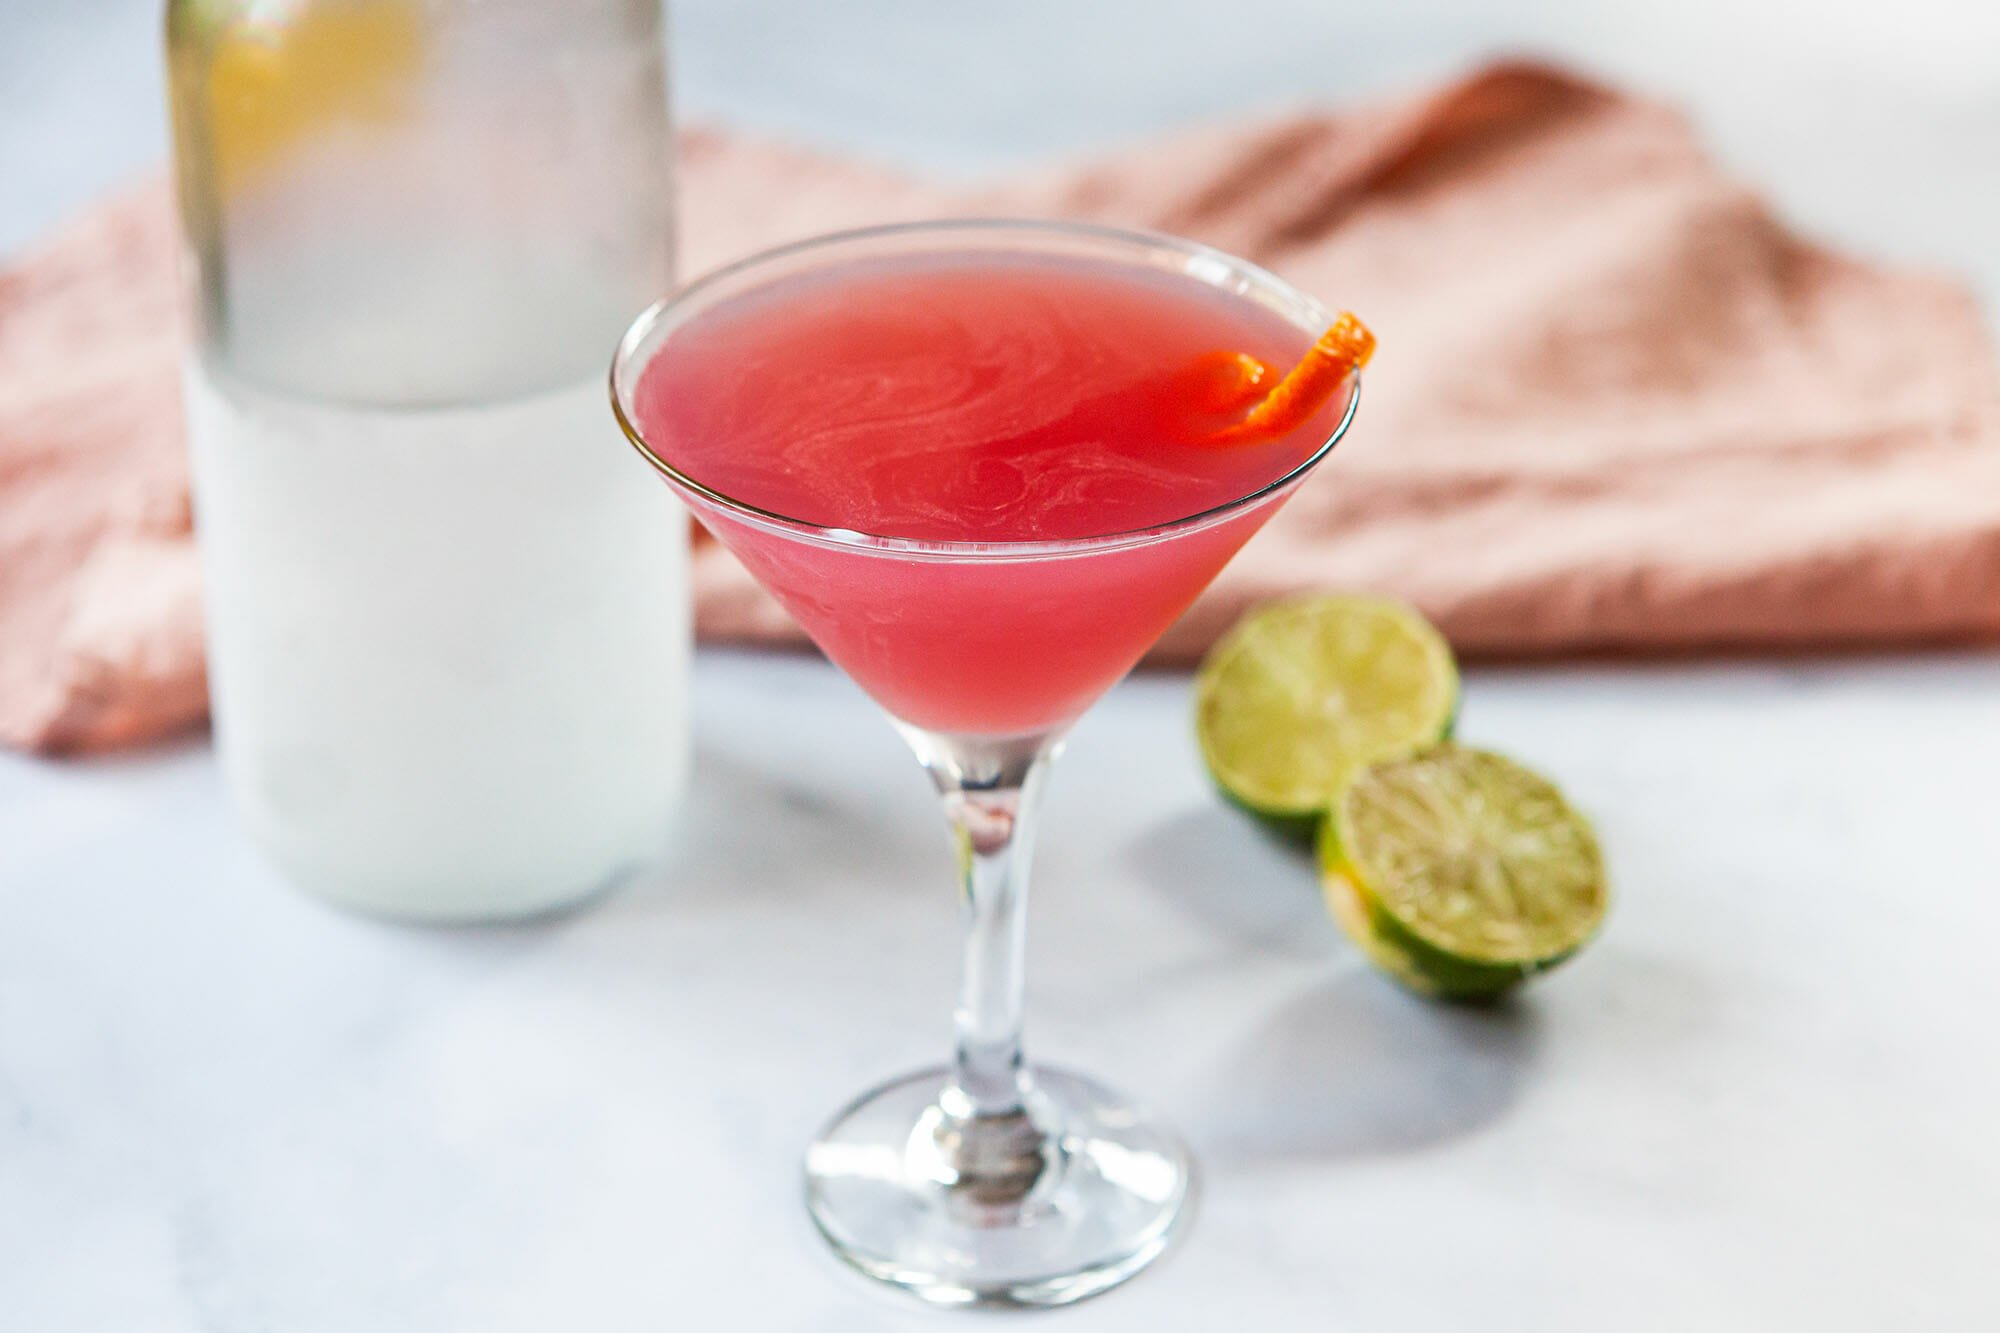 Homemade Cosmopolitan Recipe